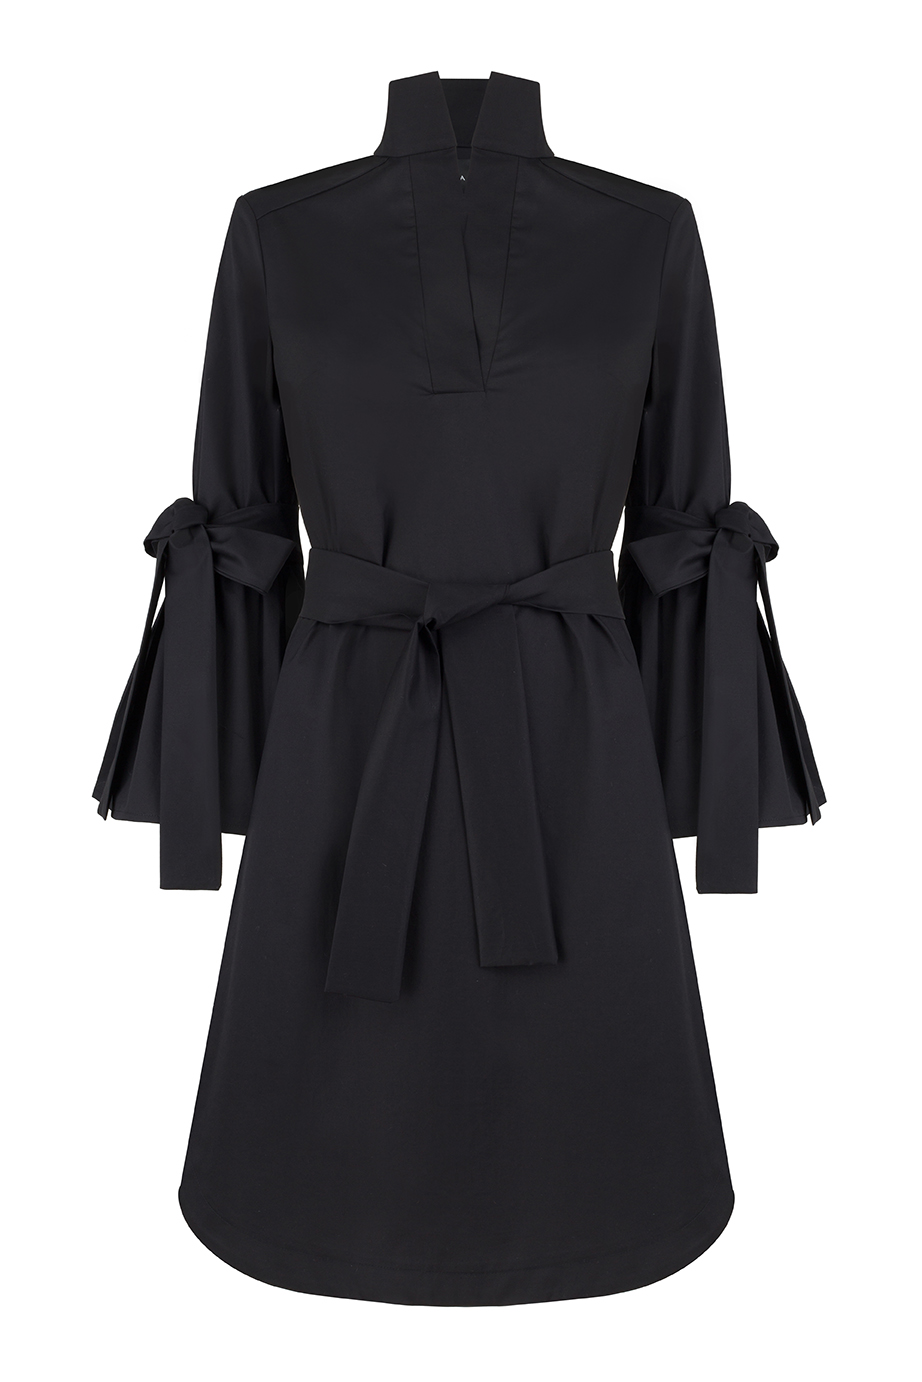 Lena Dress by Monica Nera on curated-crowd.com